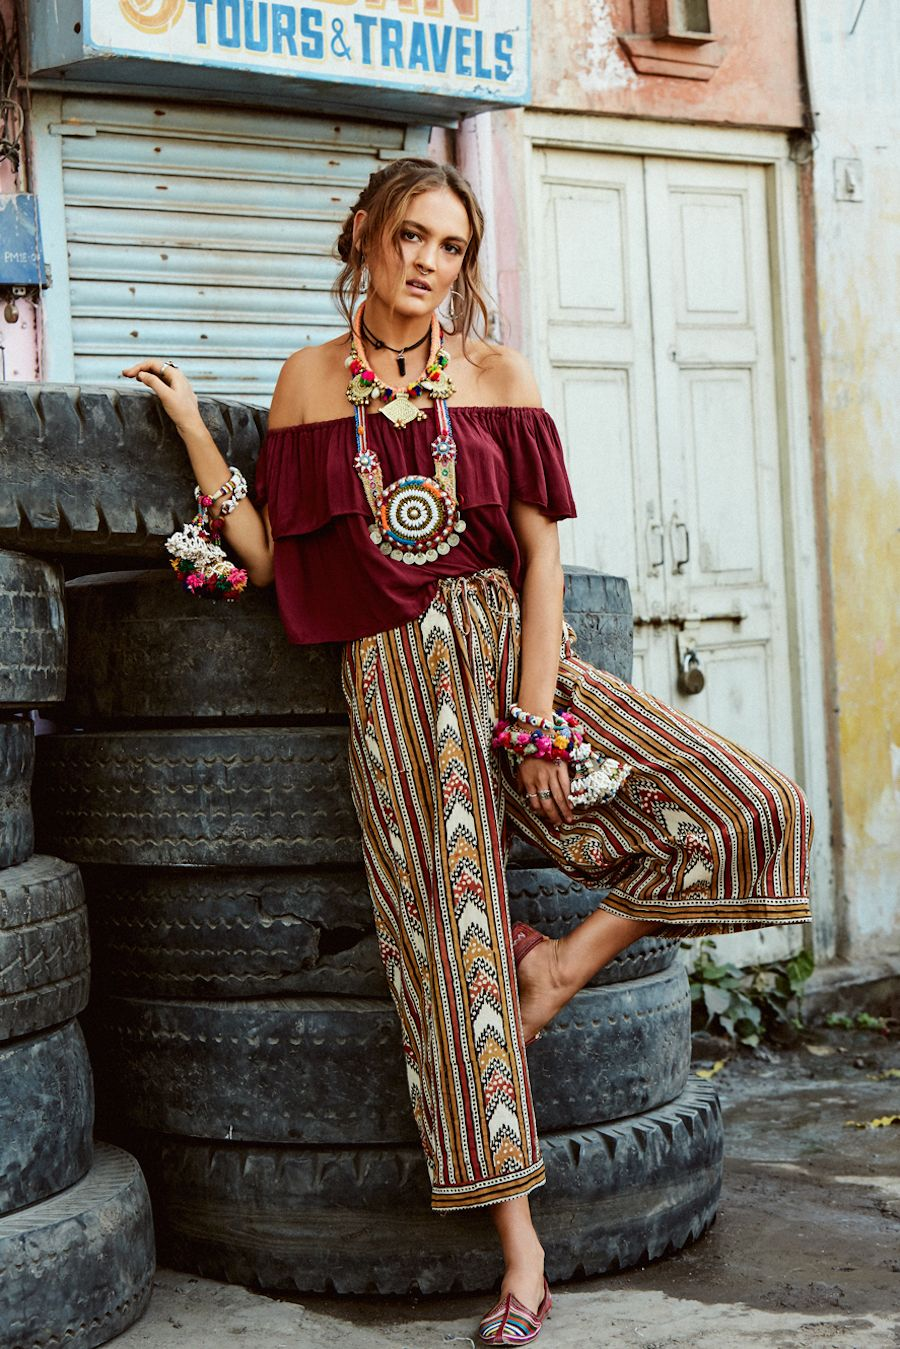 ROAD TRIP | Boho fashion, Bohemian style clothing, Boho ...